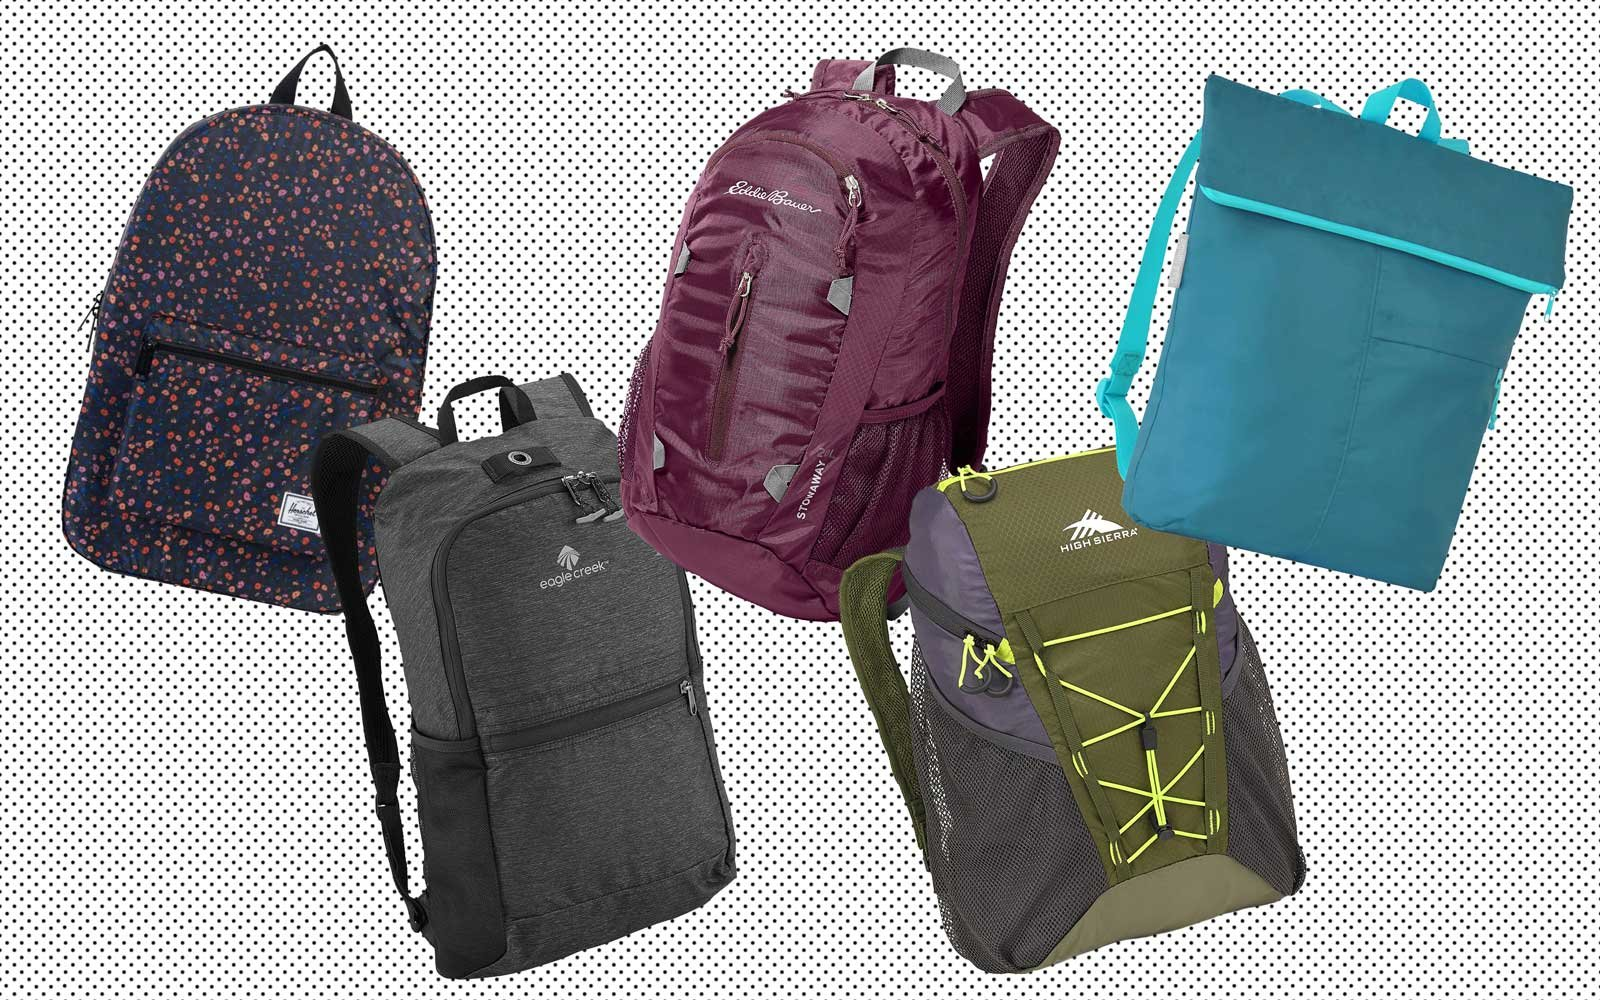 f4356b2344 The 11 Best Packable Backpacks for Travelers